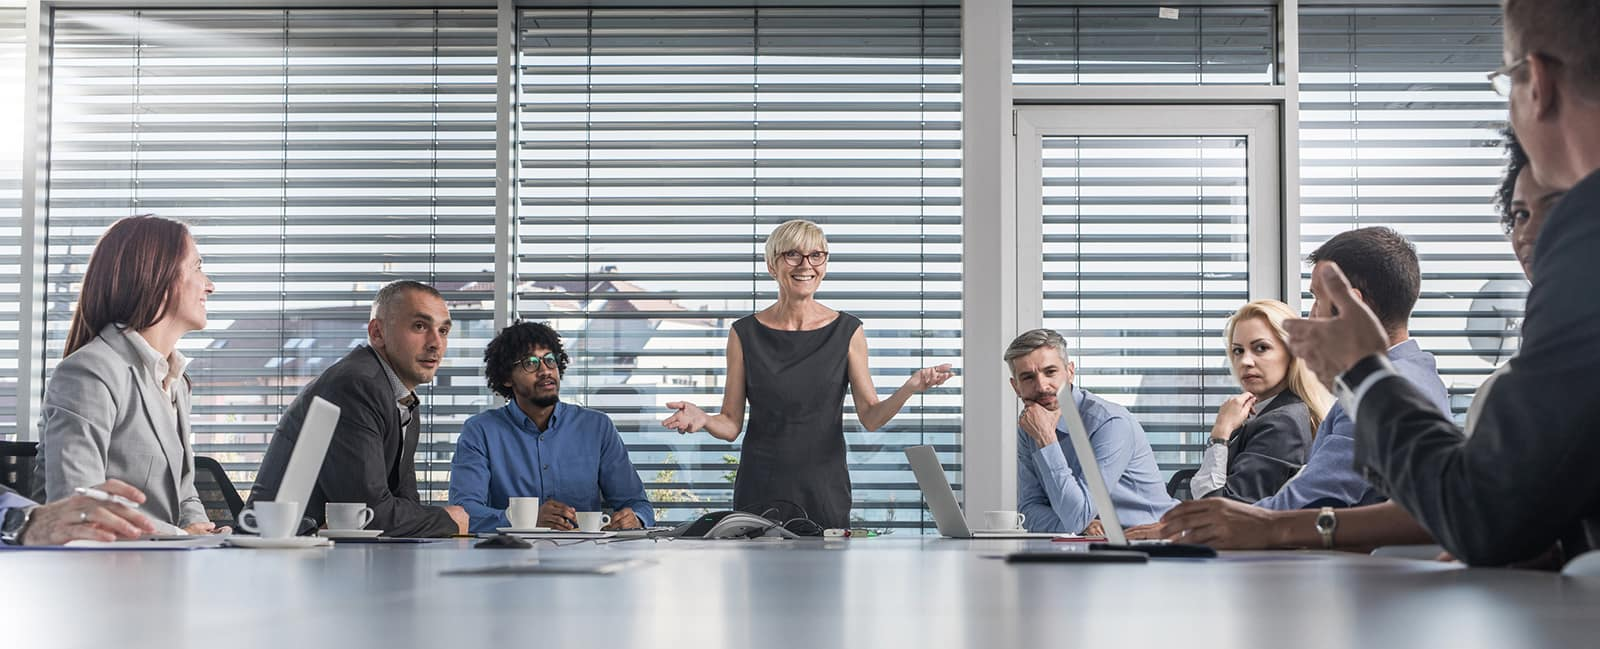 Female CEO talking to her colleagues during a business meeting at conference table.